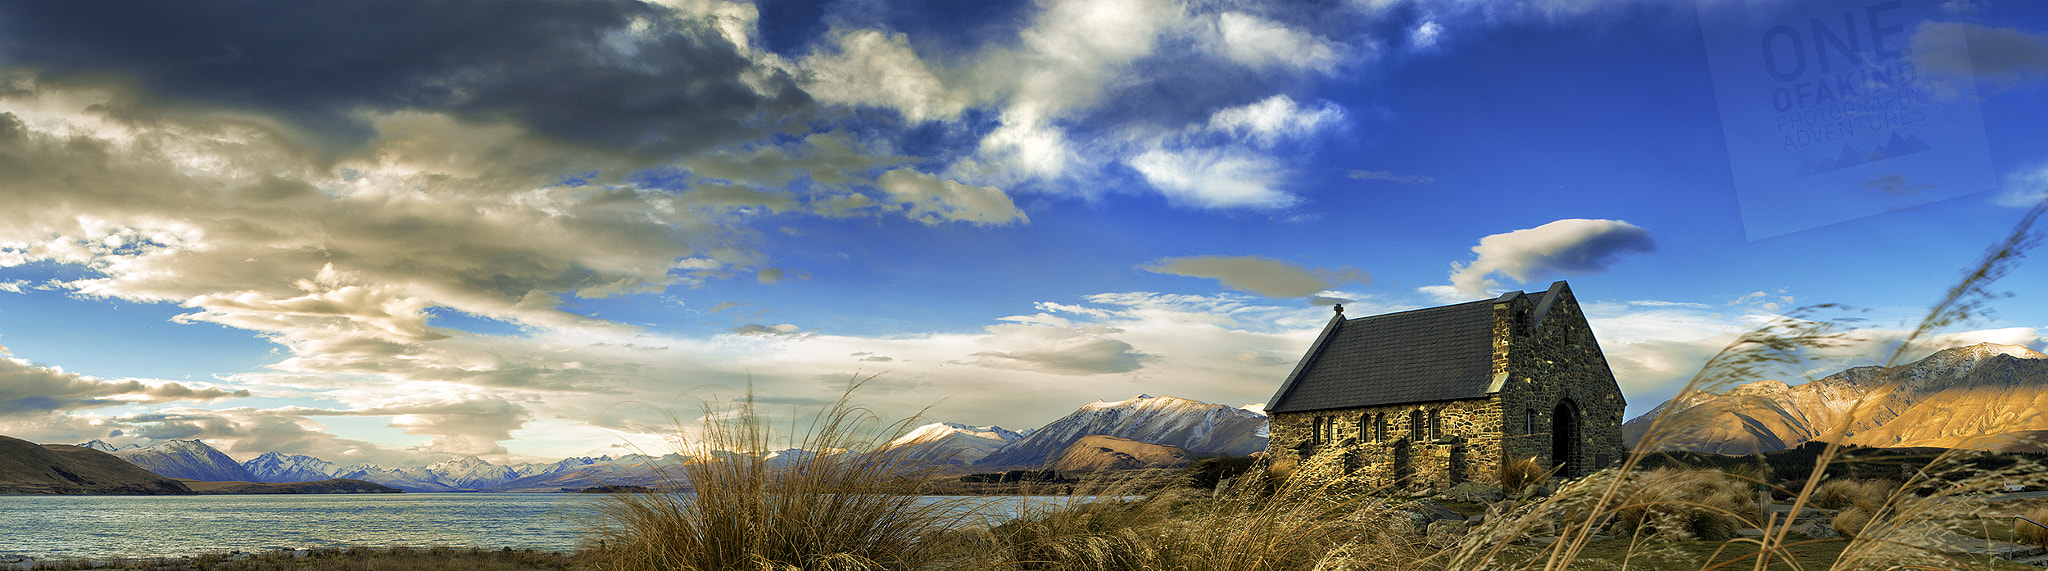 Photograph The Chapel by Timothy Poulton on 500px